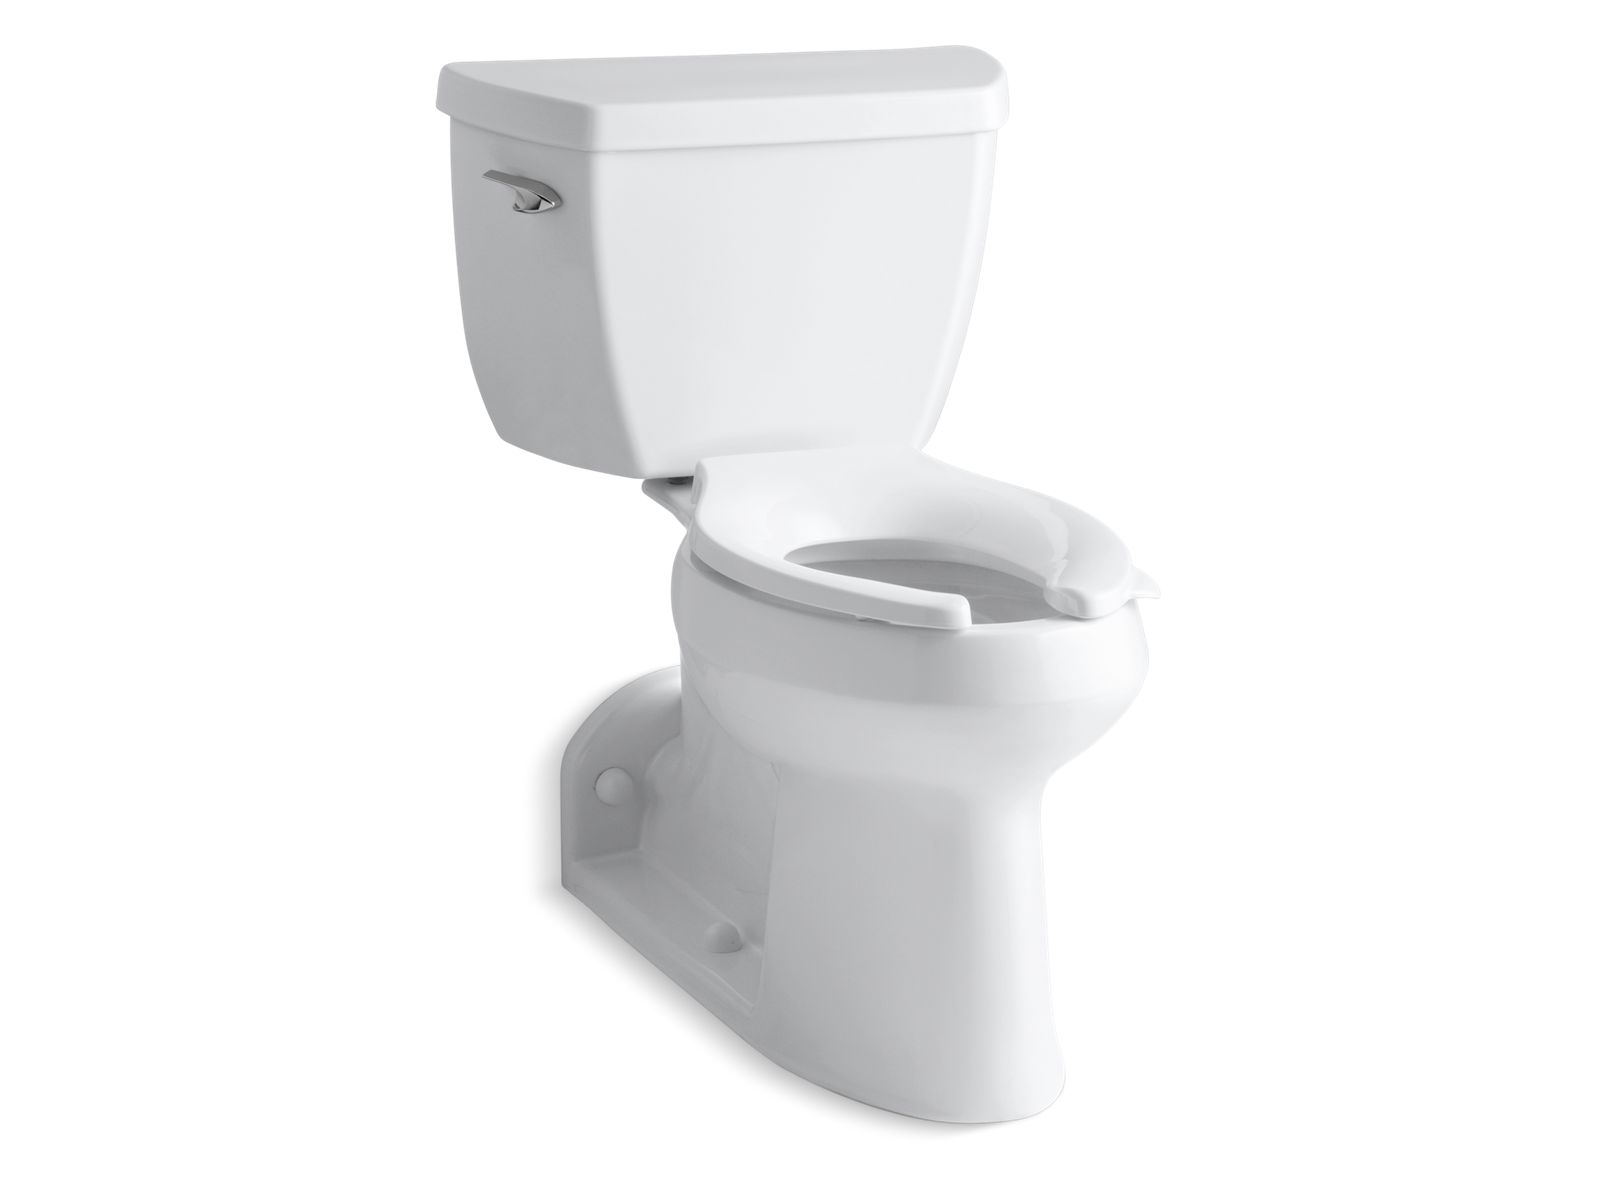 barrington comfort height twopiece elongated 10 gpf toilet with pressure lite flushing technology and lefthand trip lever k3578 kohler